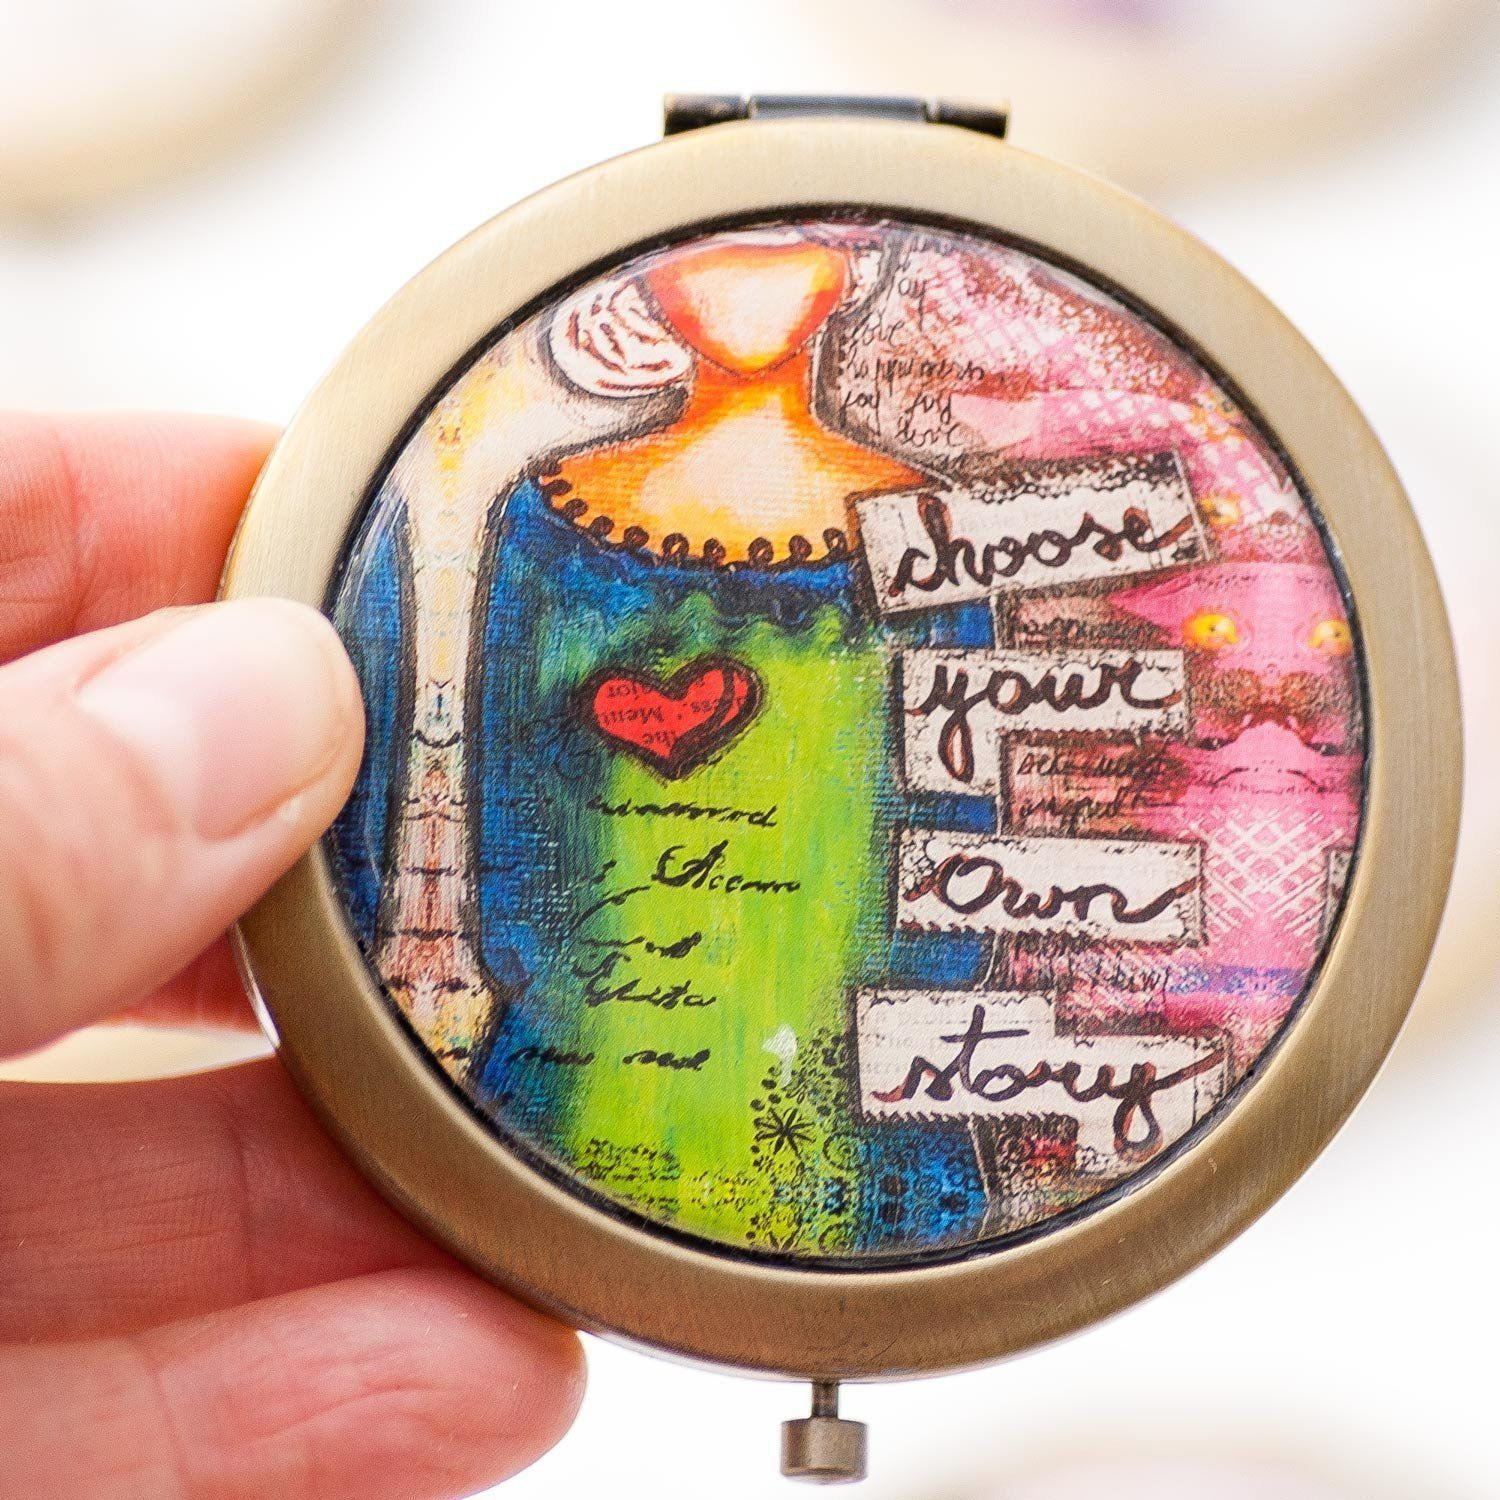 Compact Mirror – Hand Mirror – Inspirational Gifts for Women – Travel Gift – for Her – Best Friend Gifts – Gift for Wife – Gift for Mother